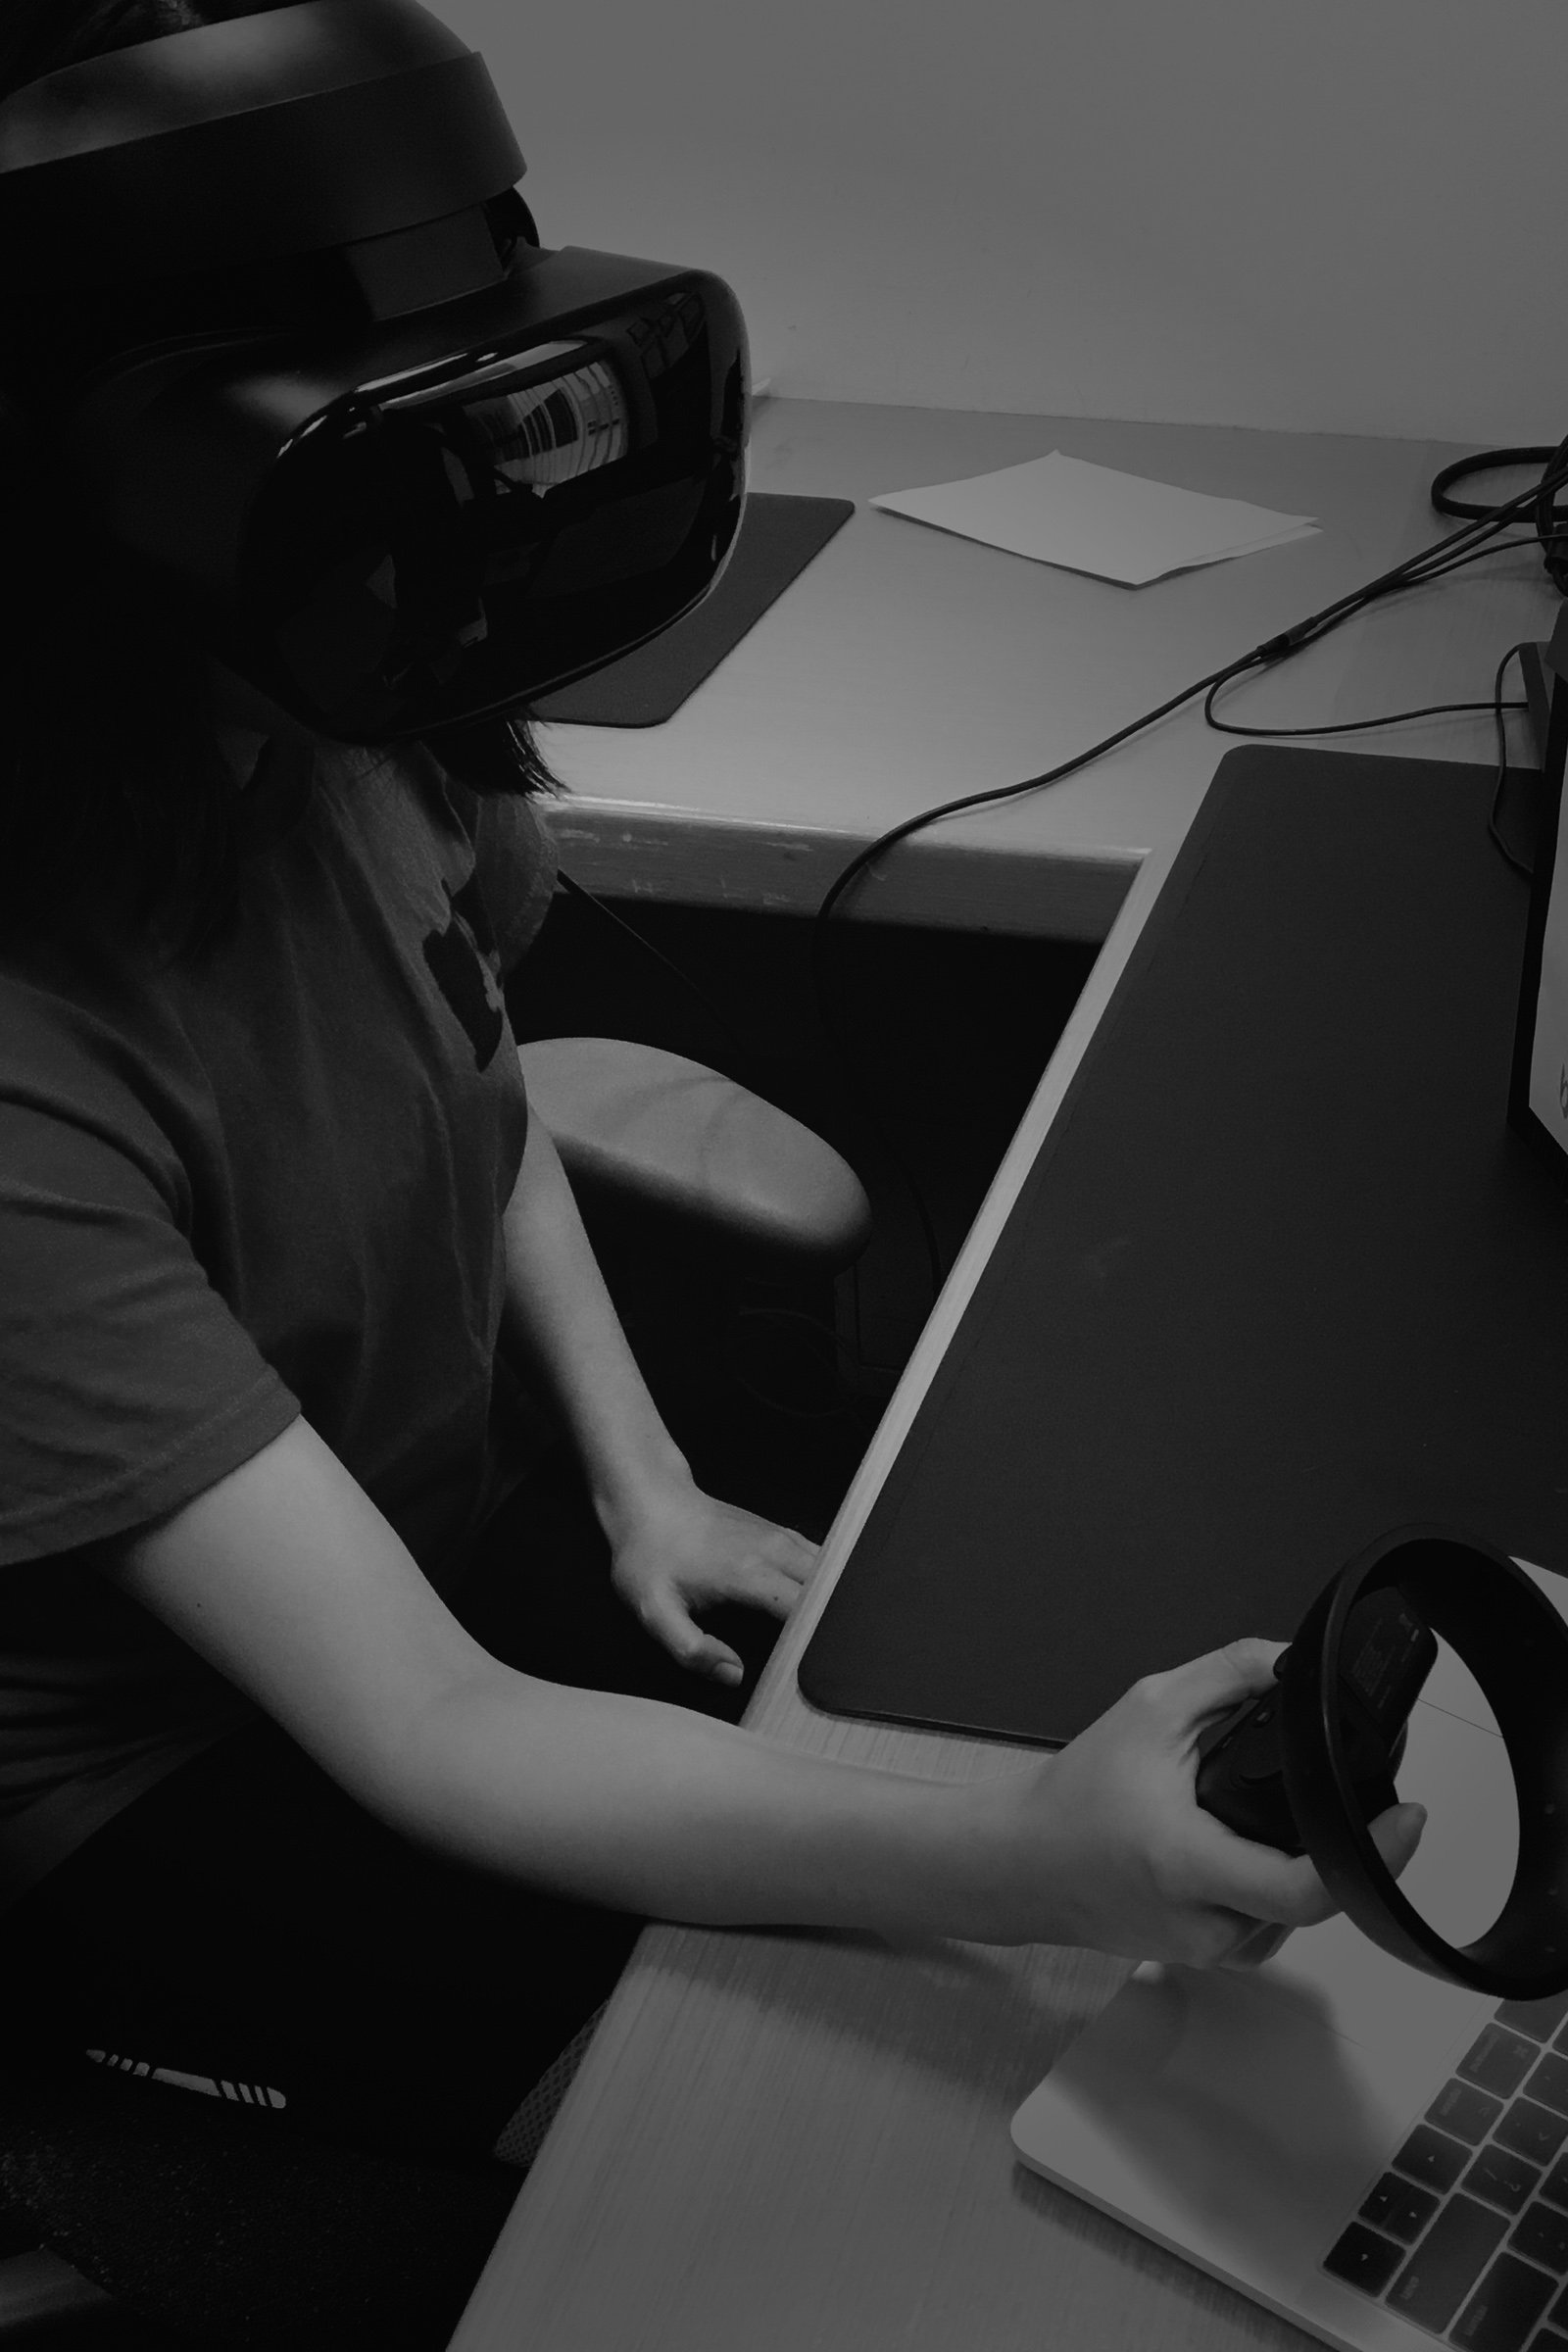 Student prototyping in VR